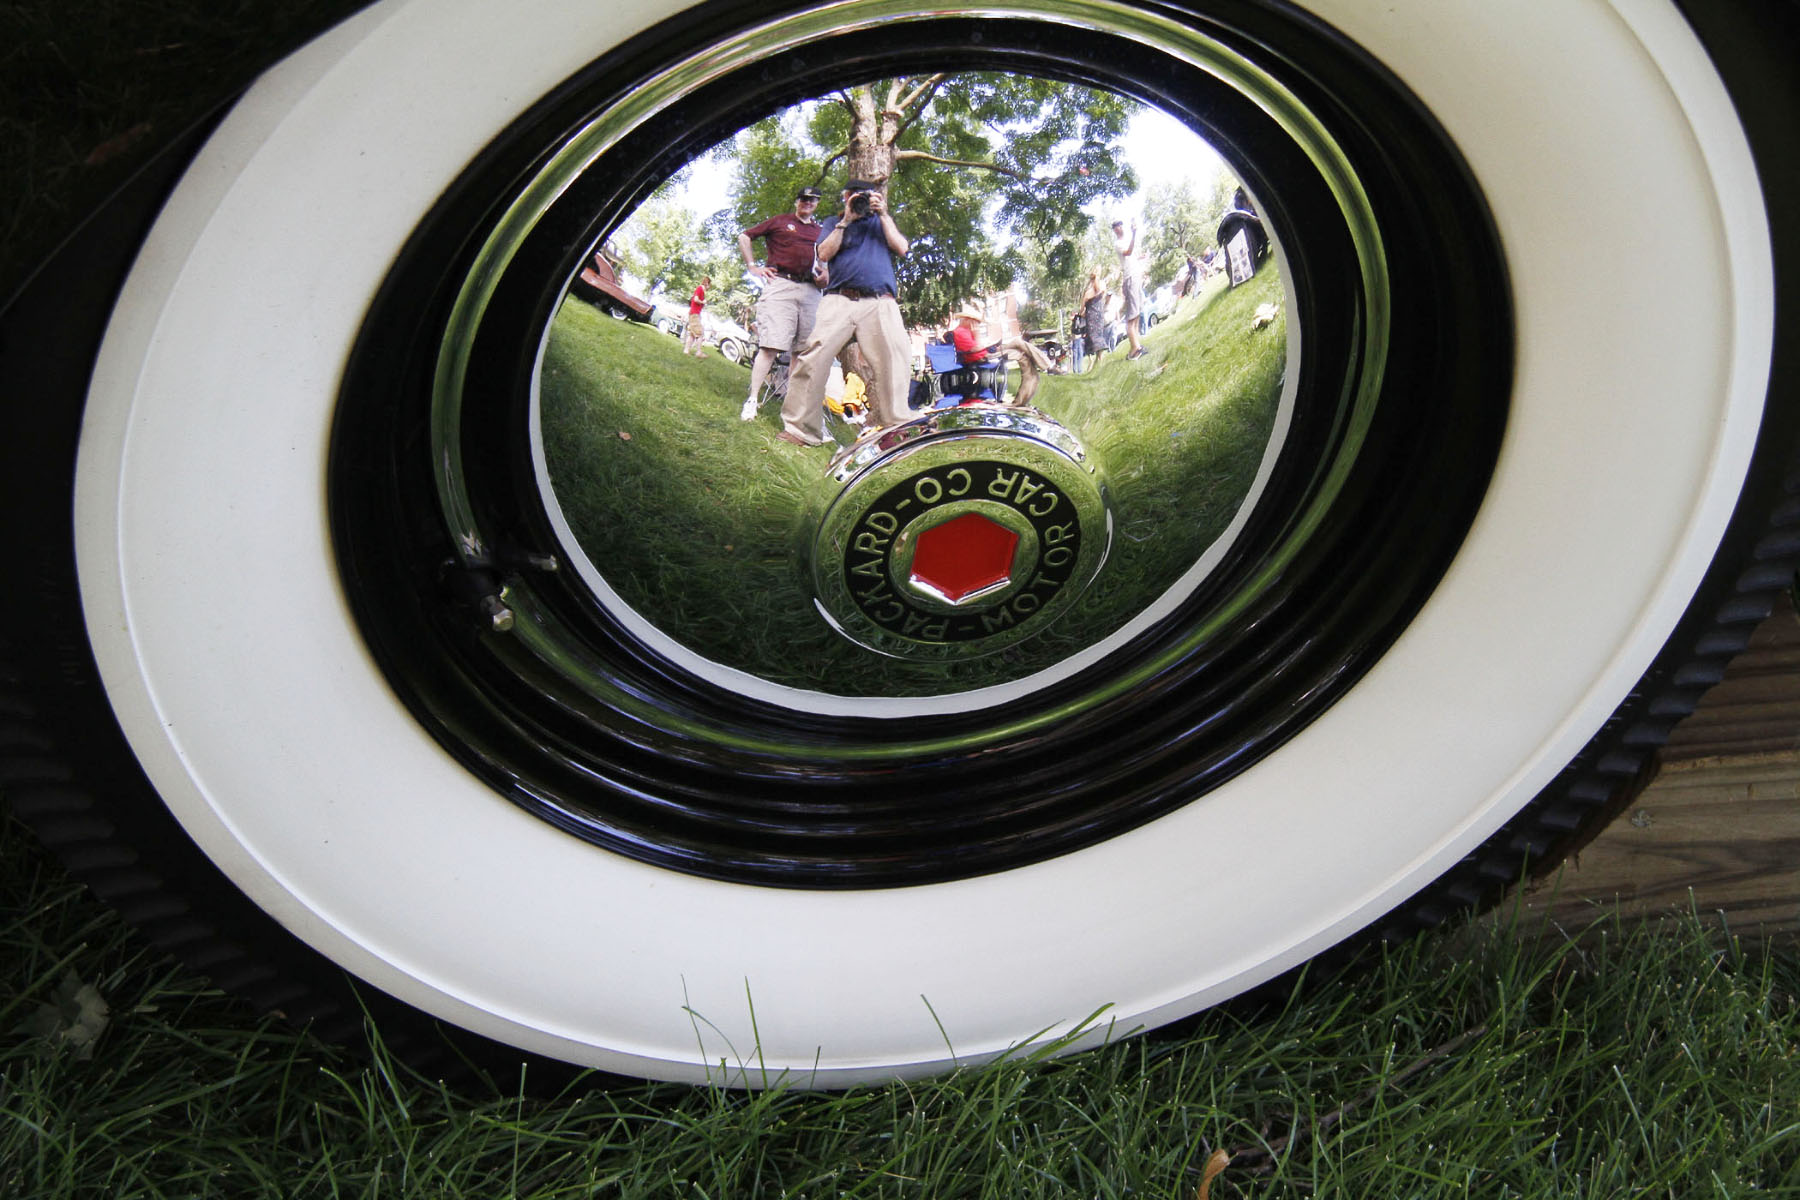 ALBERT-AND-DALE-REFLECTION-ON-PACKARD-HUB-CAP